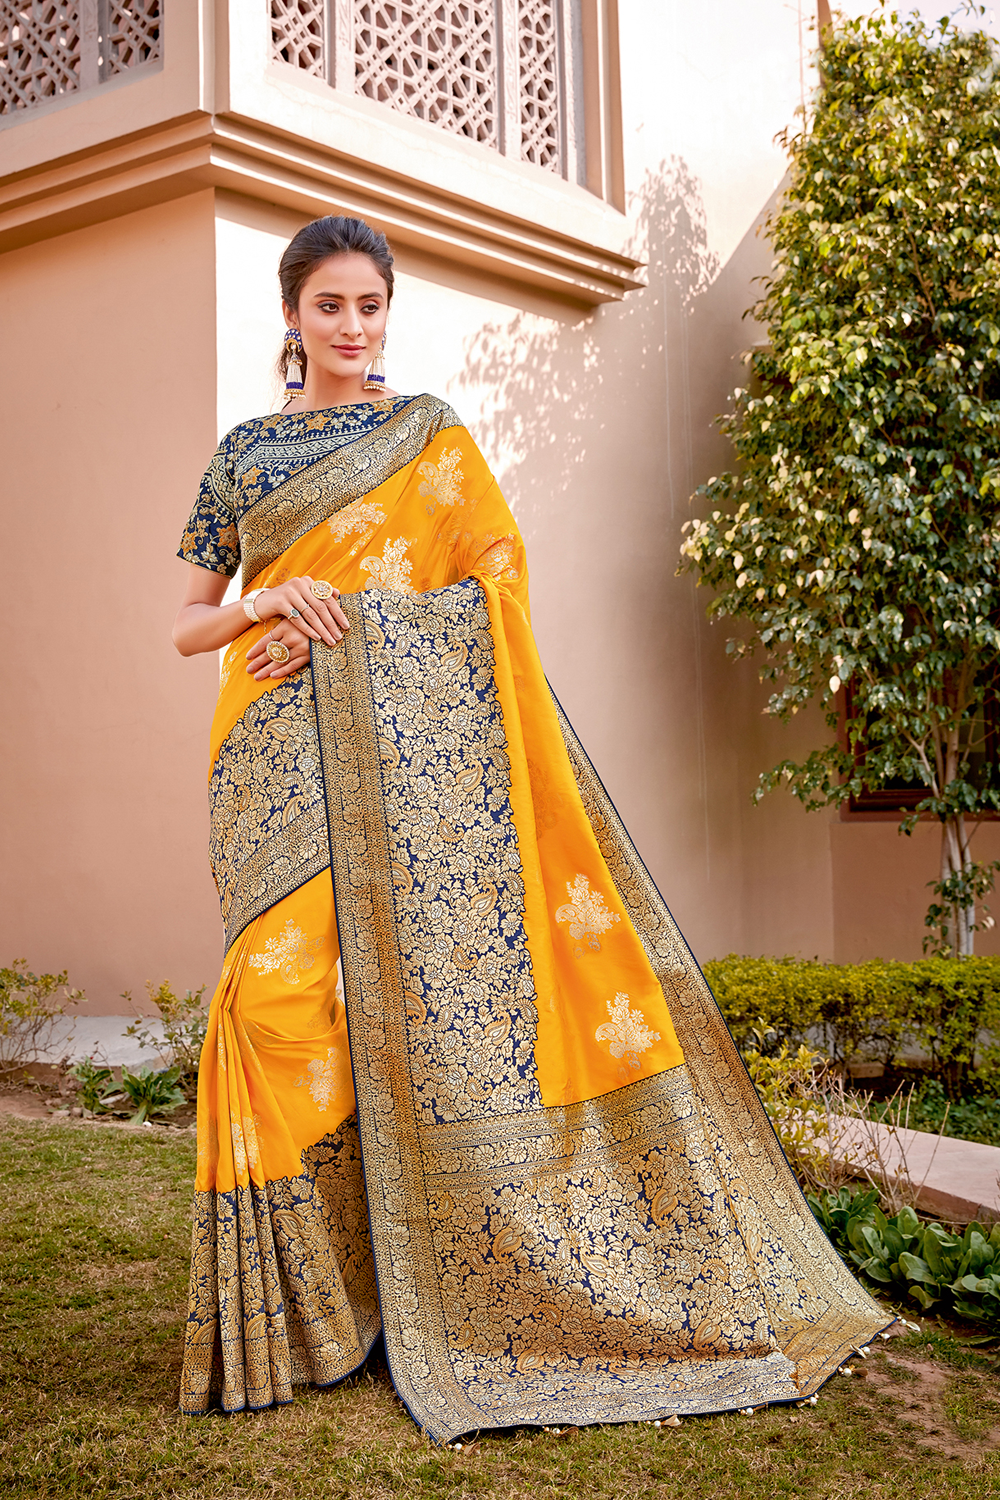 A tasteful combination of auspicious yellow and ornate floral weaves saree